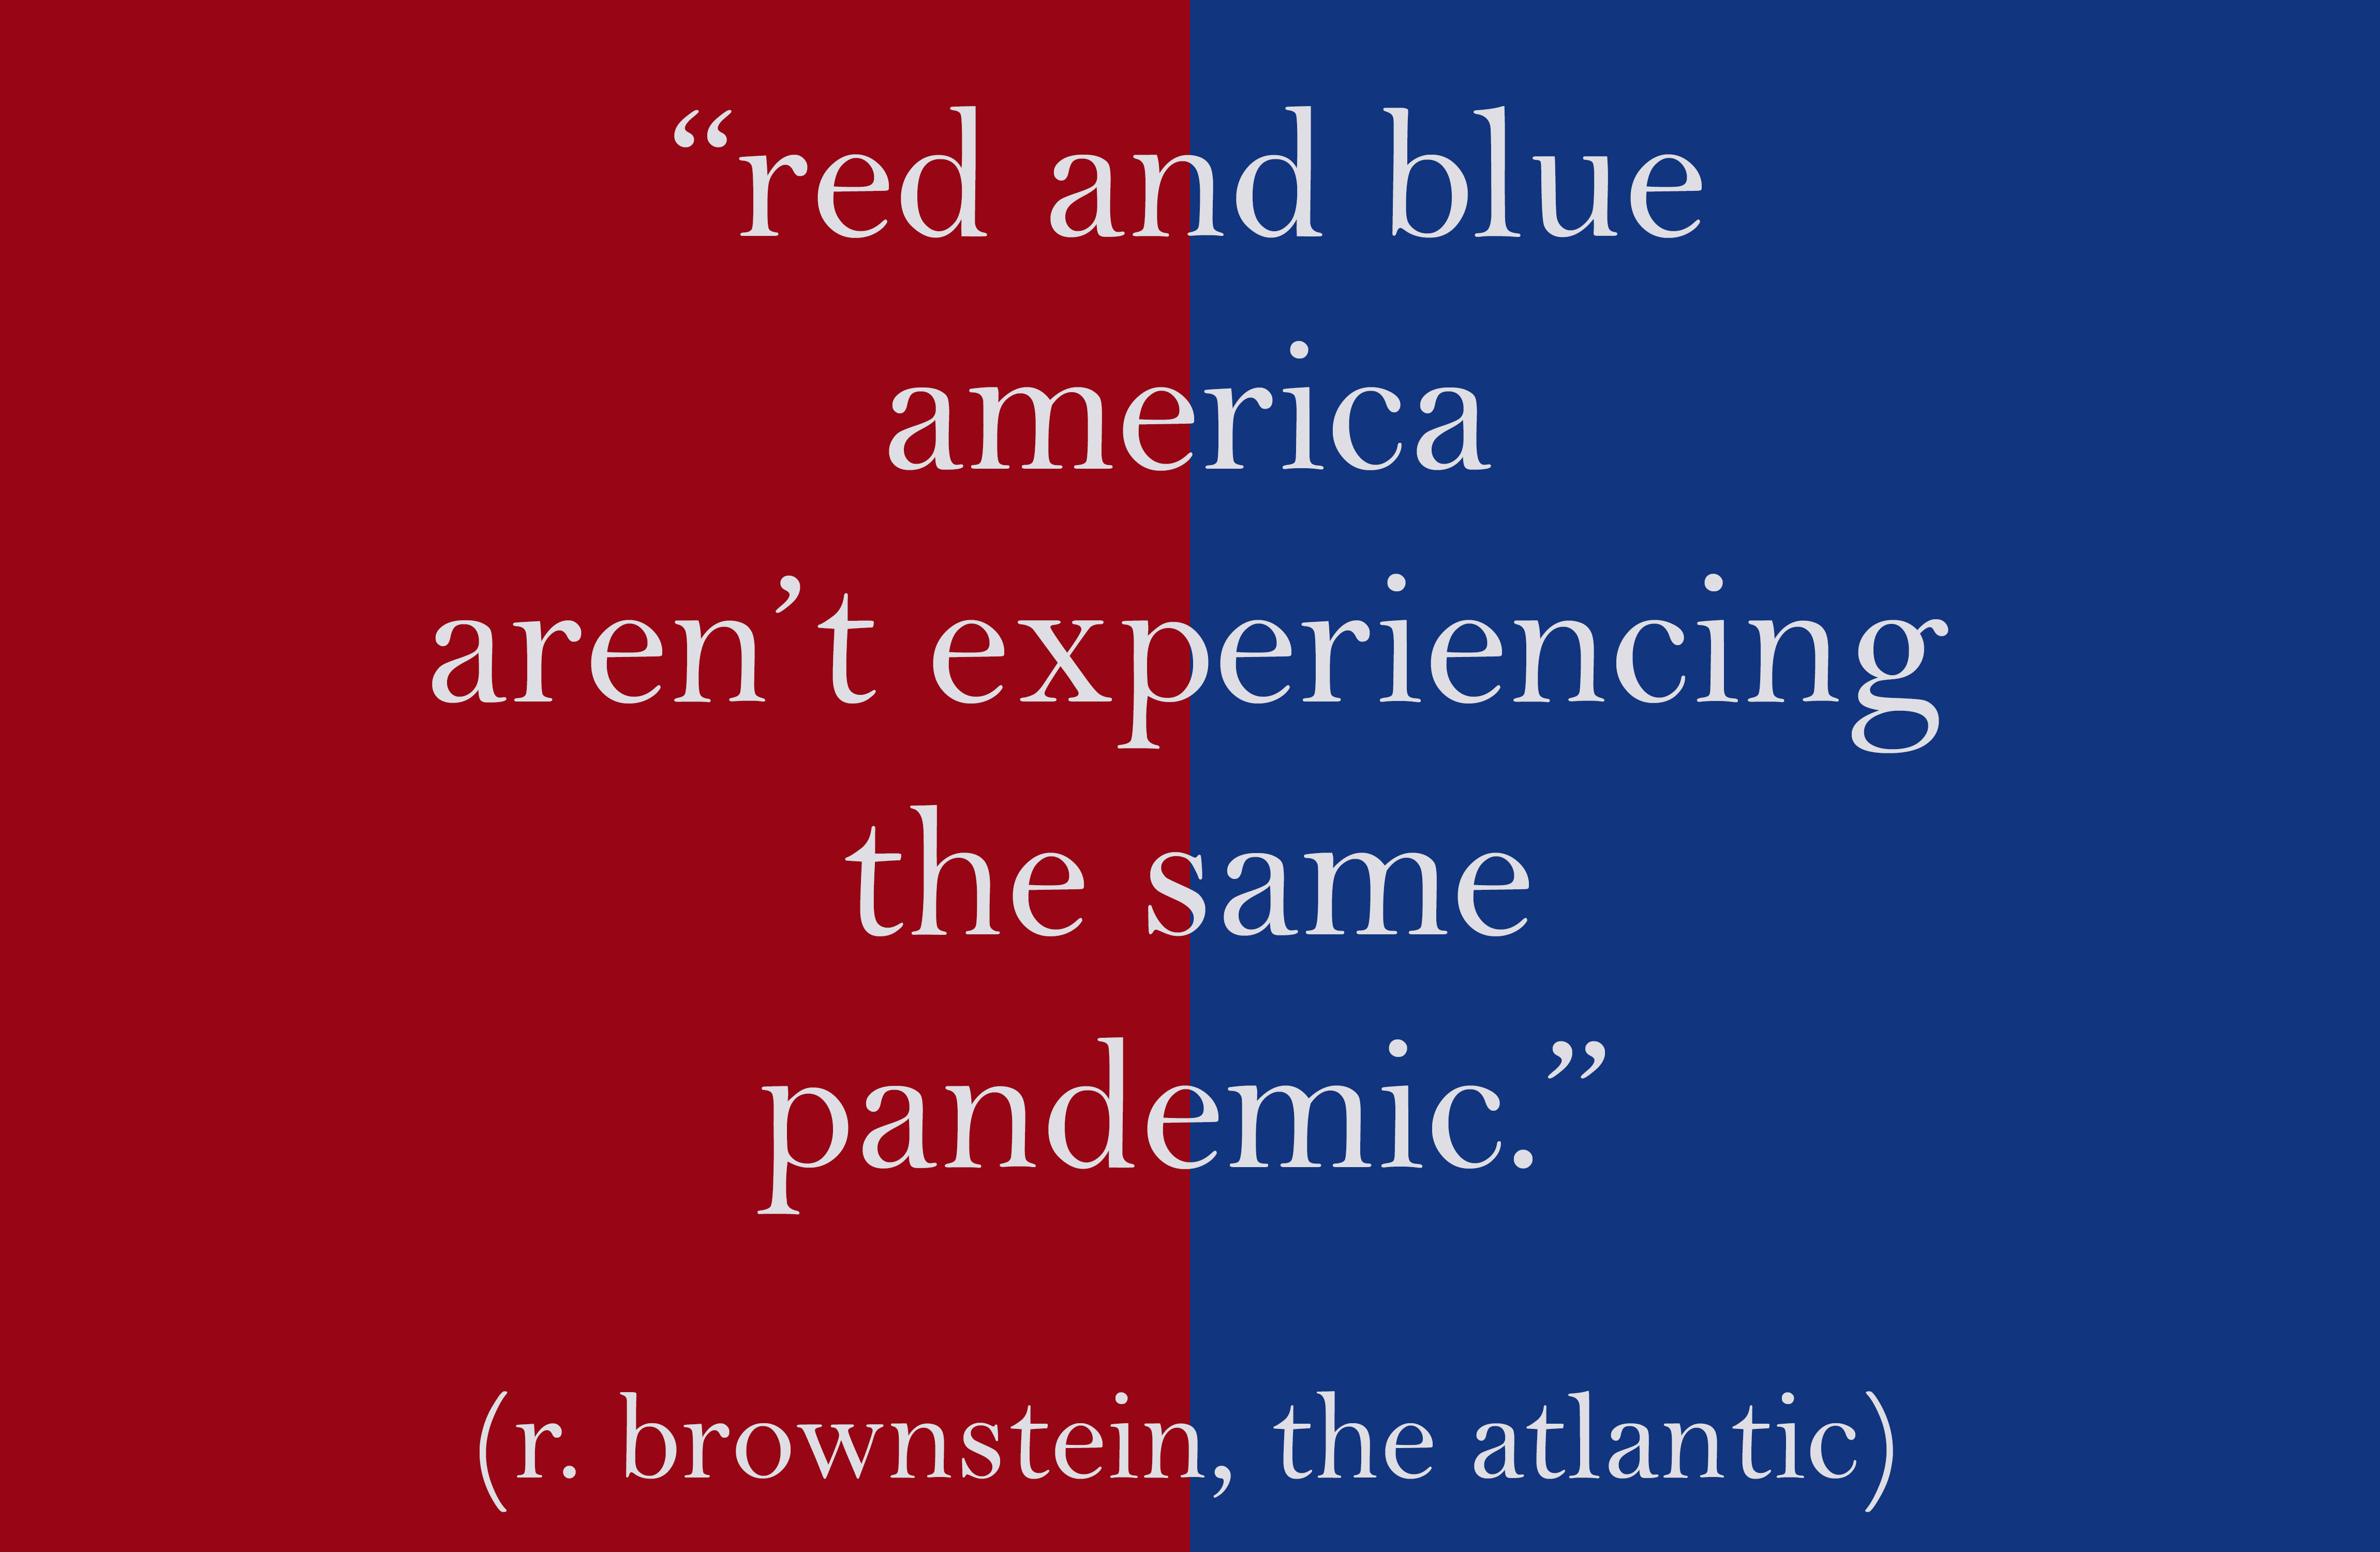 red and blue america